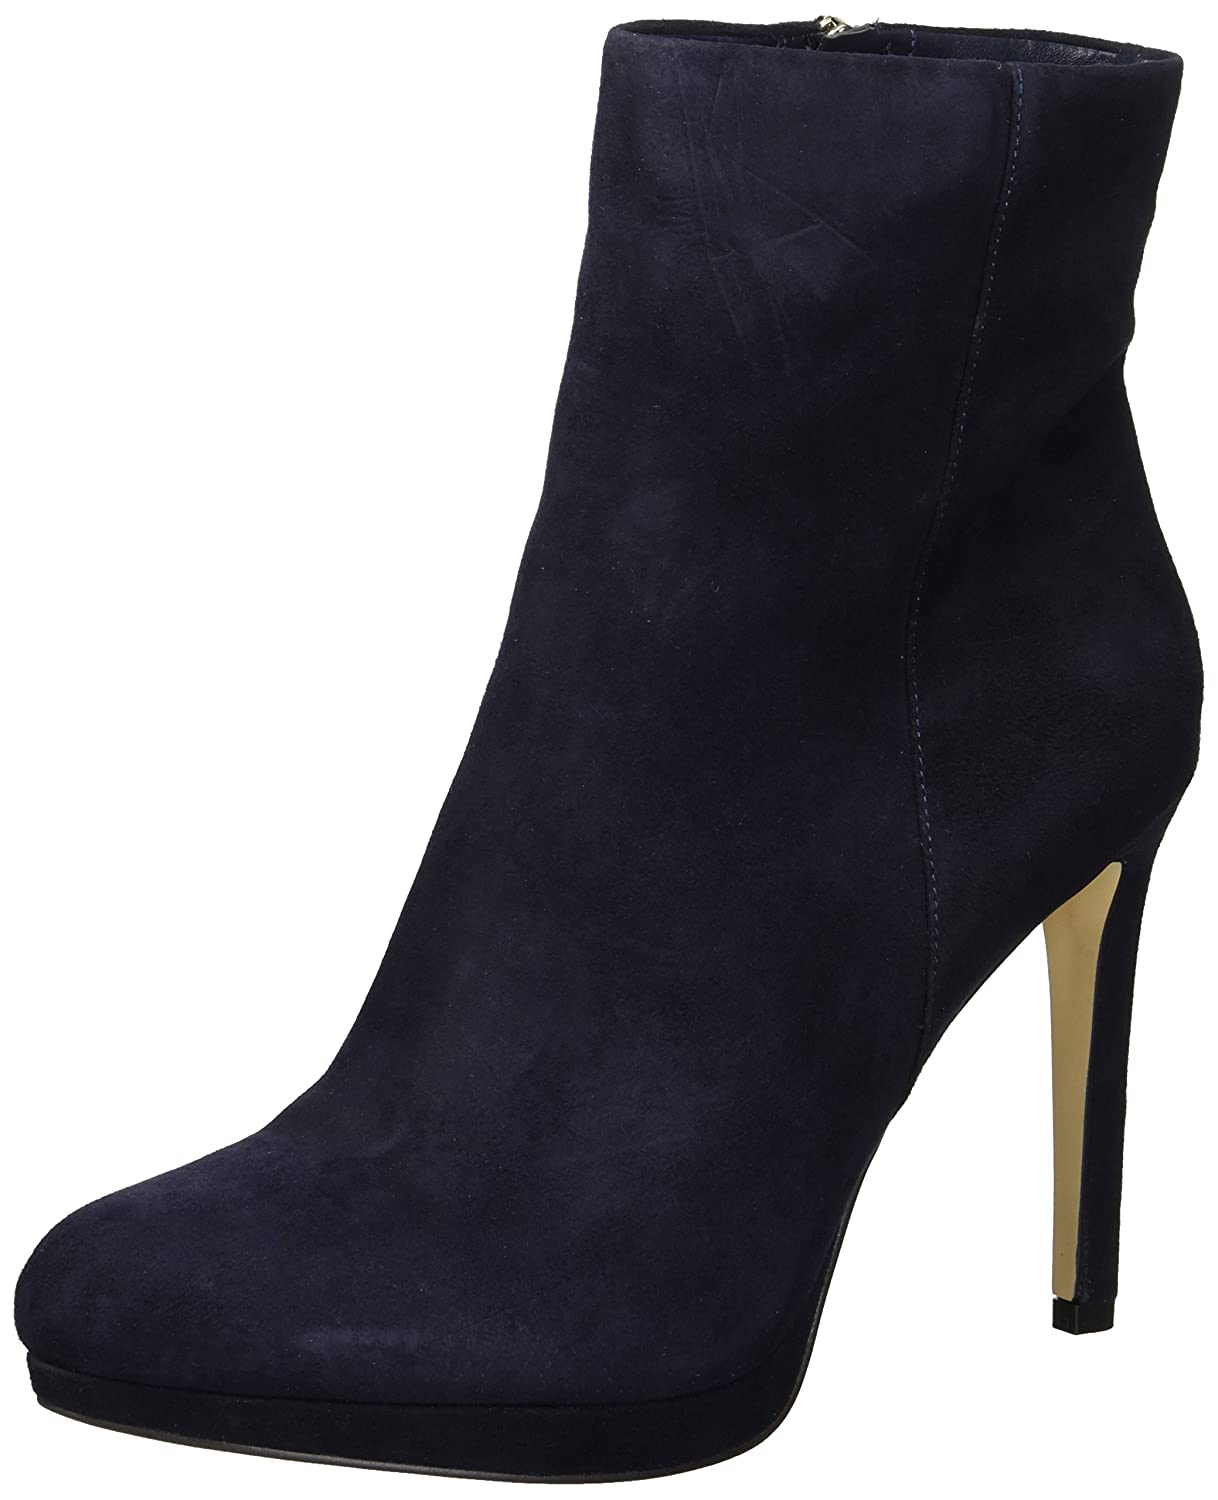 Nine West Women's Quanette Suede Ankle Boot B077W2BN3T 5.5 B(M) US|Navy